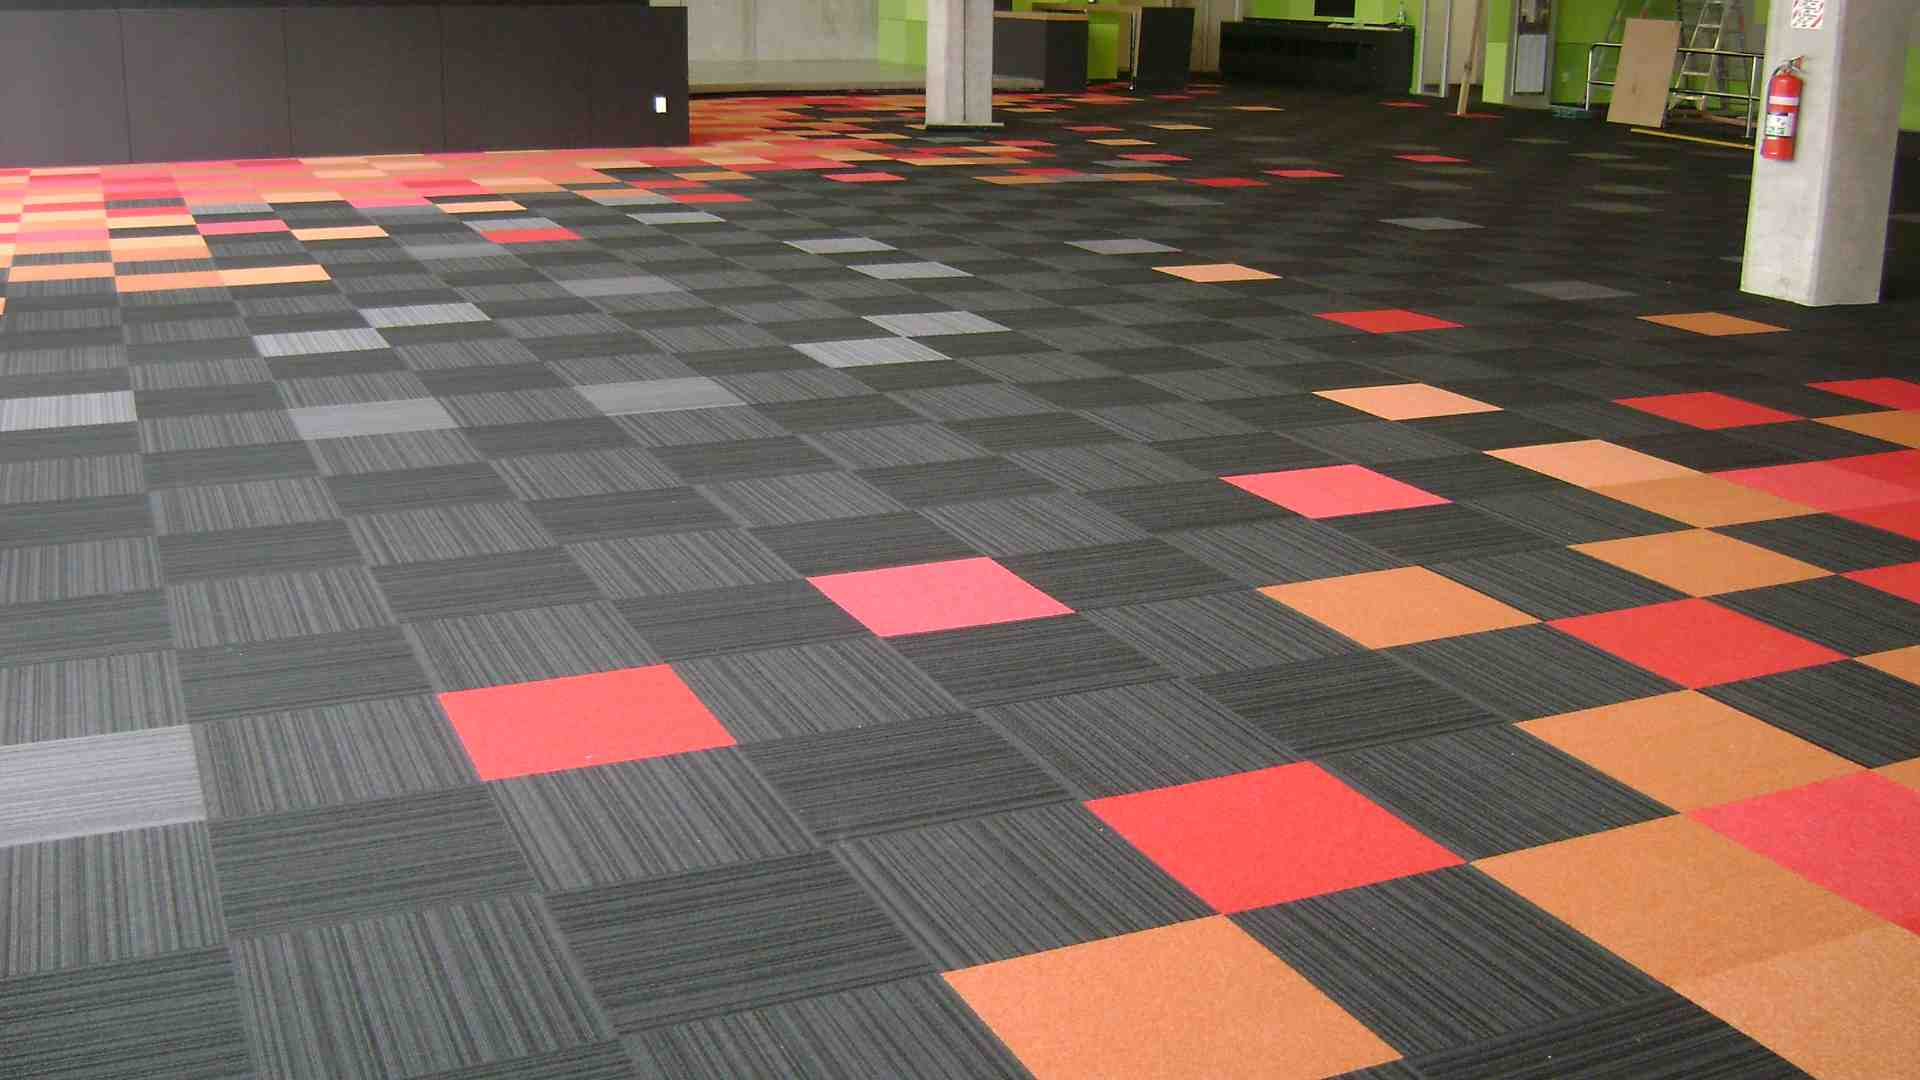 flooring carpet more related posts: QXEQTAC